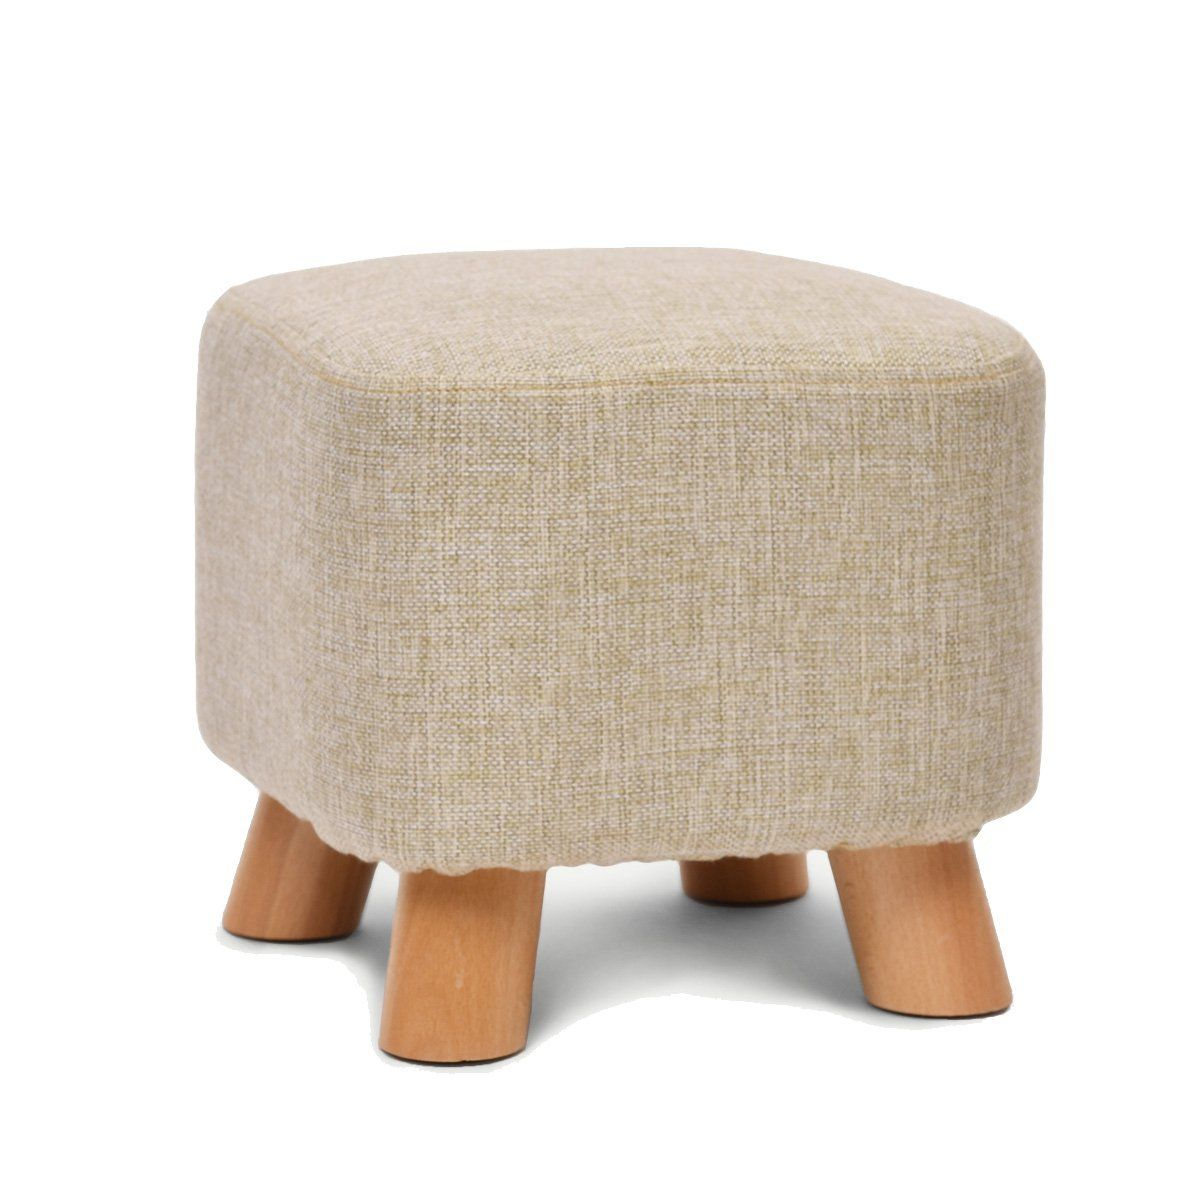 UUSSHOP Square Wooden Wood Support Upholstered Footstool Ottoman ...